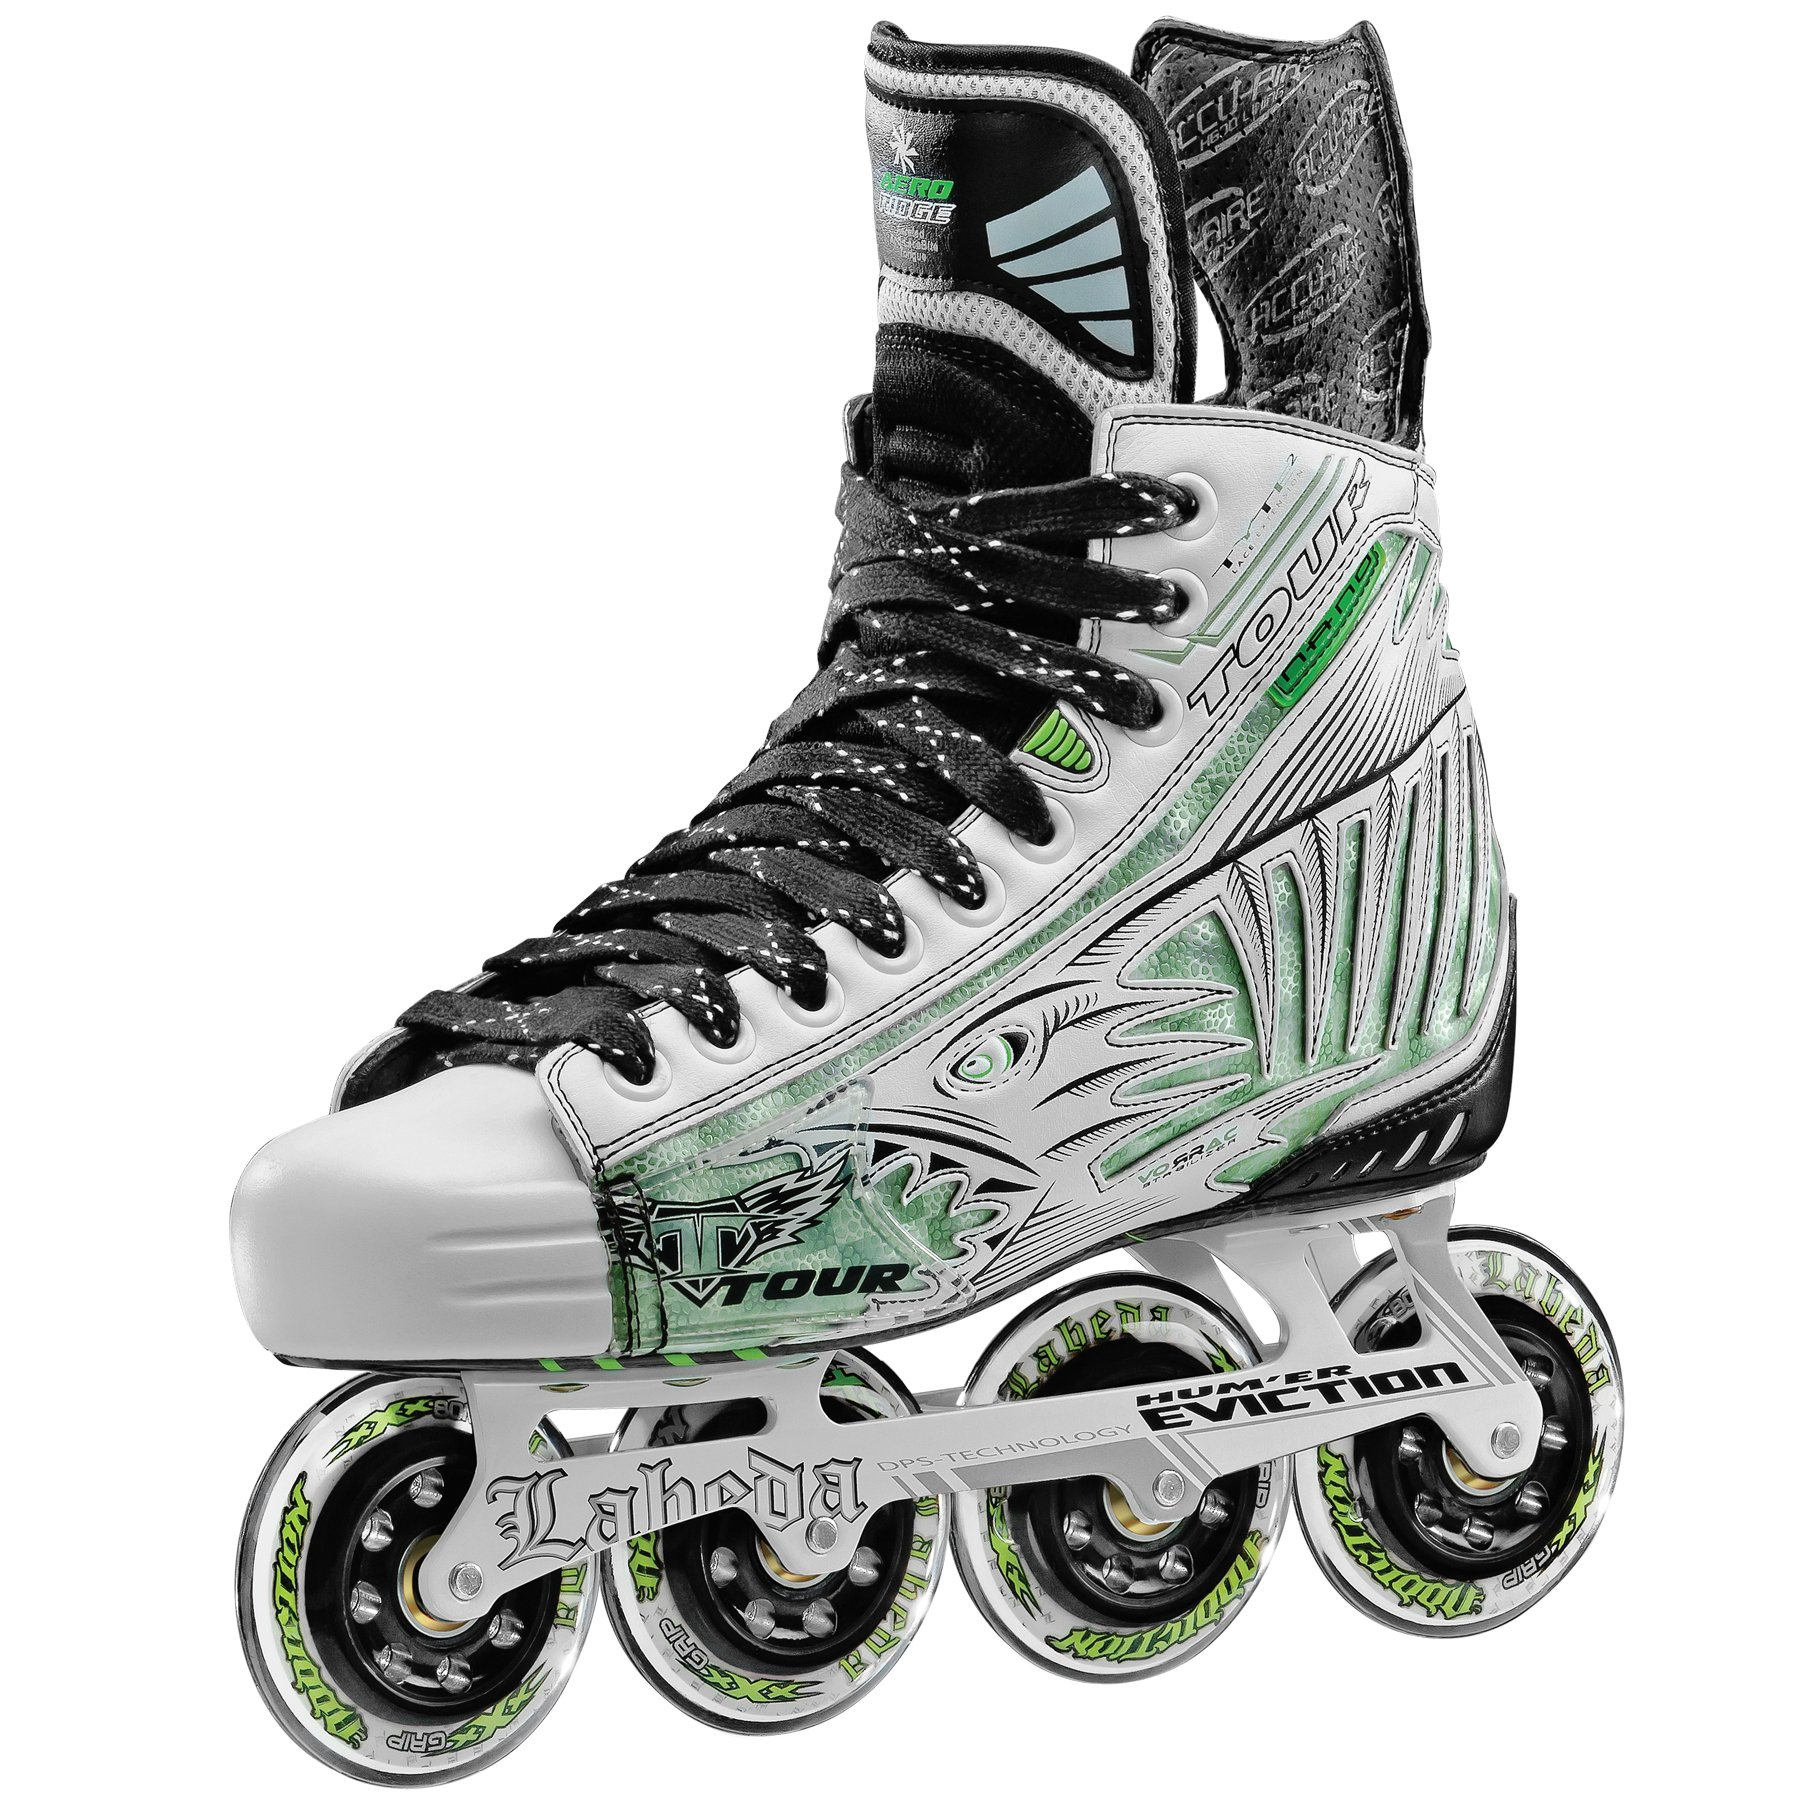 Tour Hockey Pro Fish Bonelite Inline Hockey Skate, White, 11 by Tour Hockey